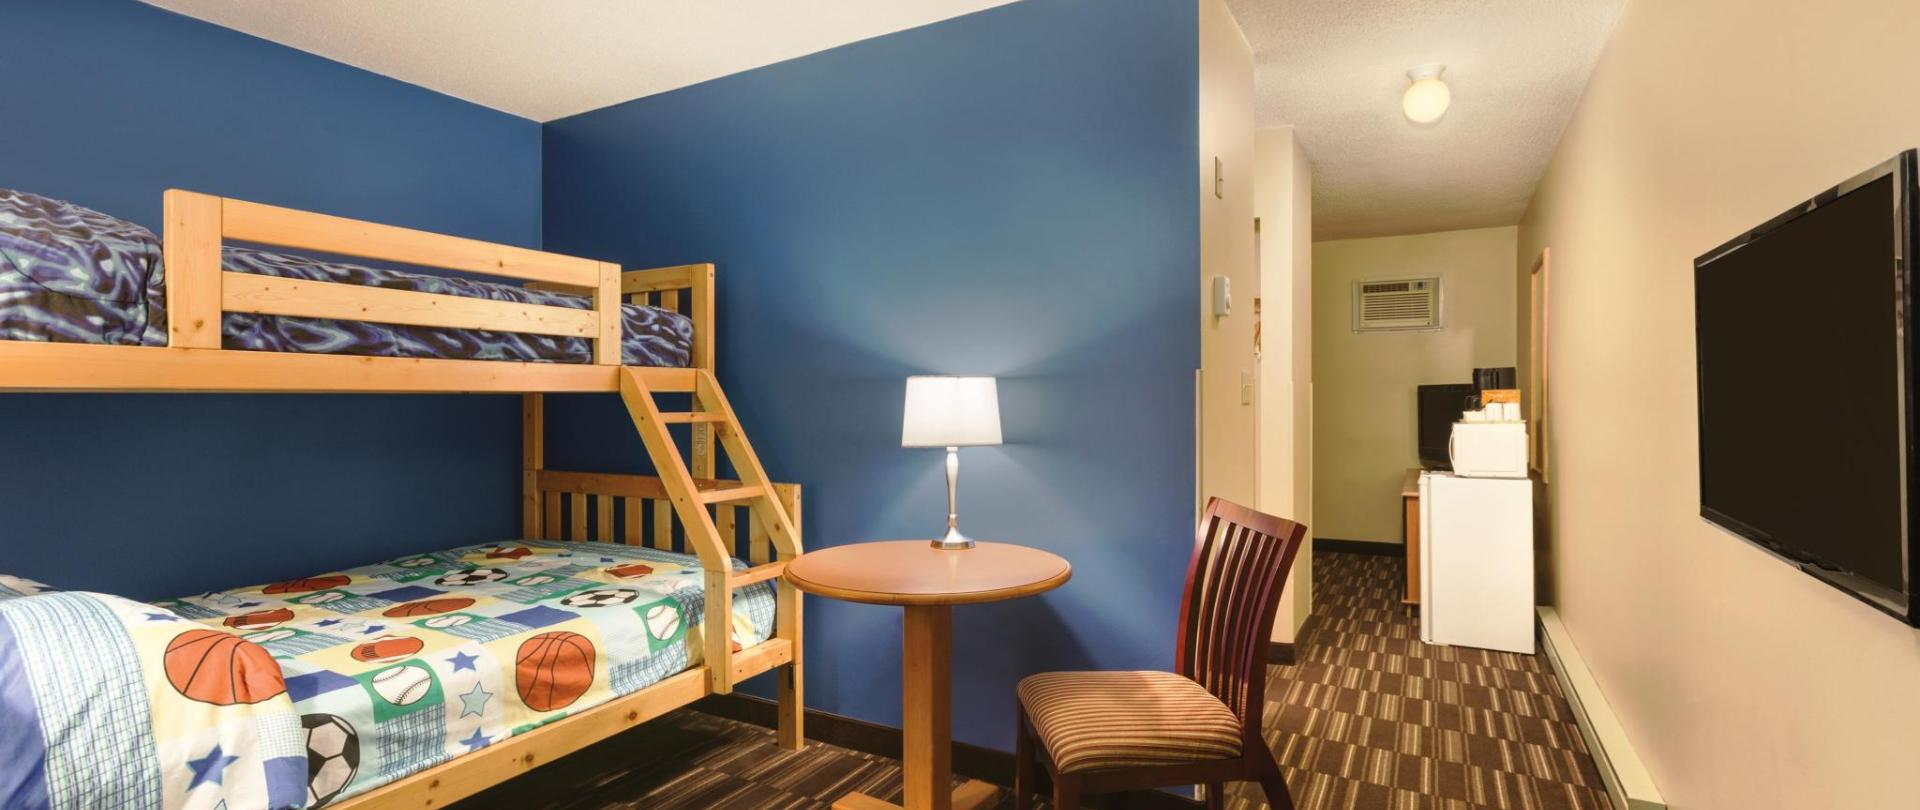 L - Family Room with Bunk Beds 4378x2918.jpg